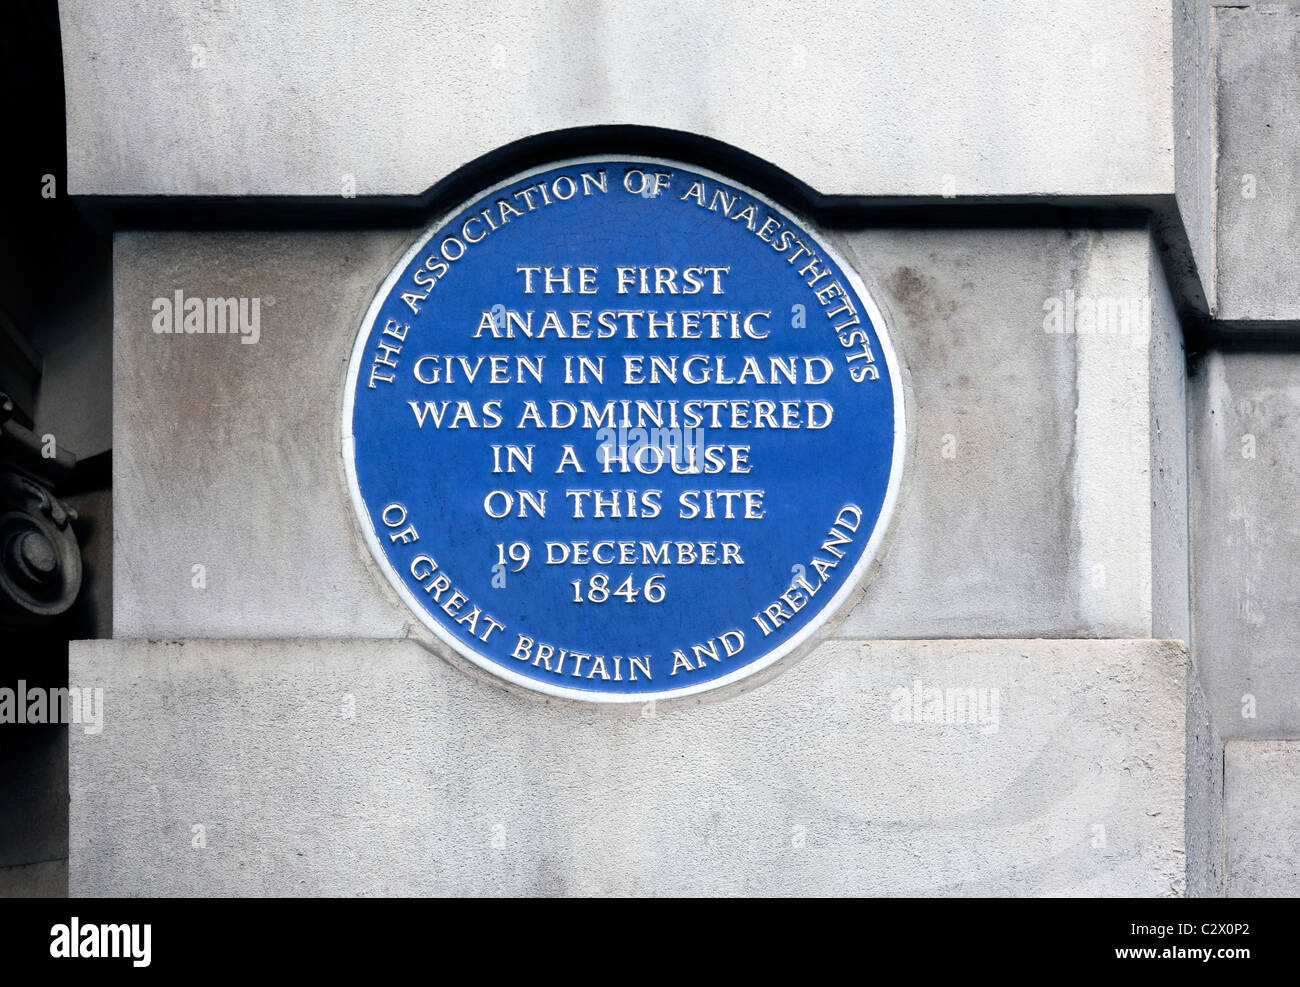 Blue plaque commemorating the first anaesthetic given in England in 1846. Stock Photo